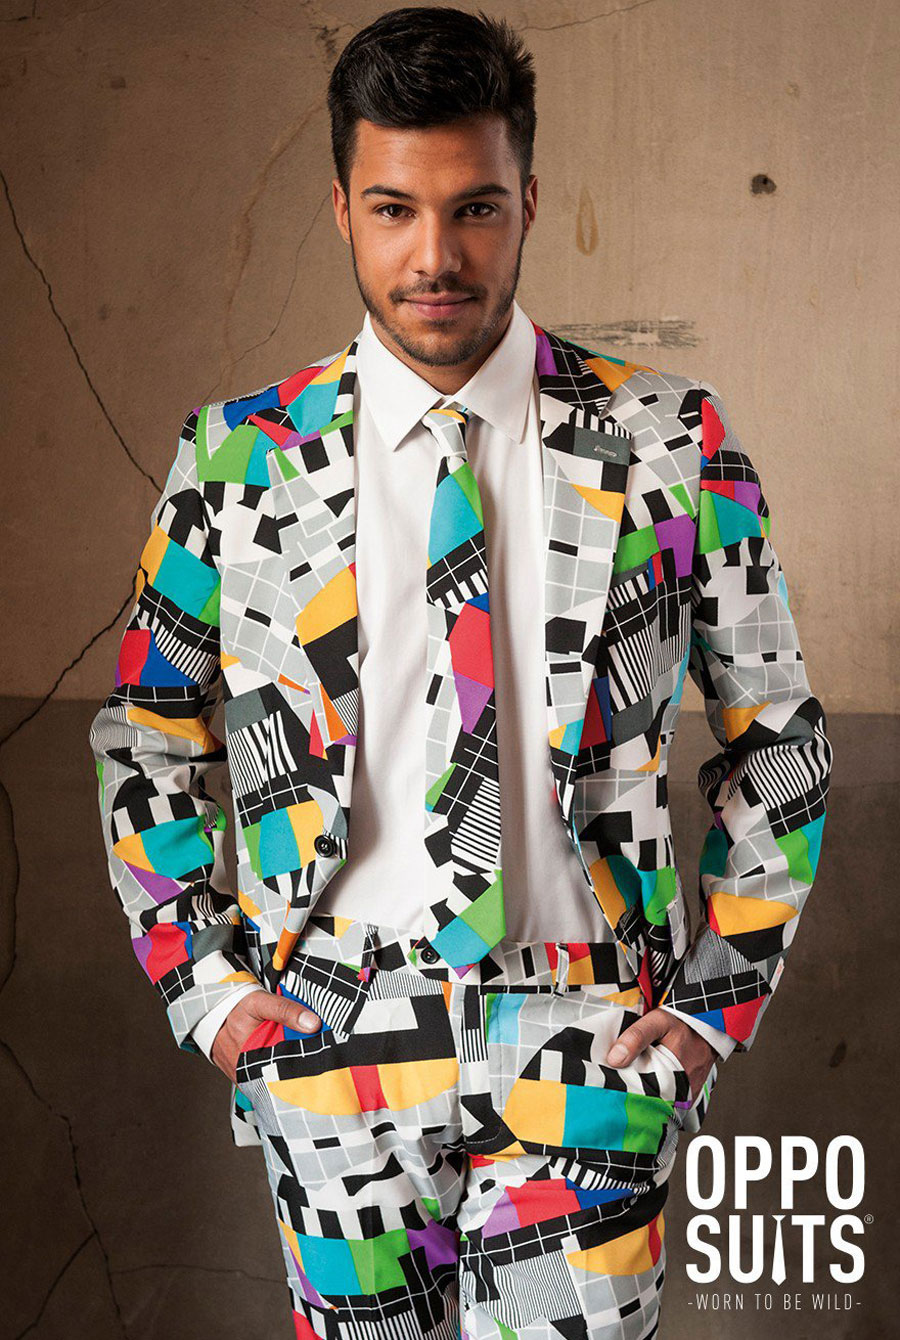 The OppoSuits